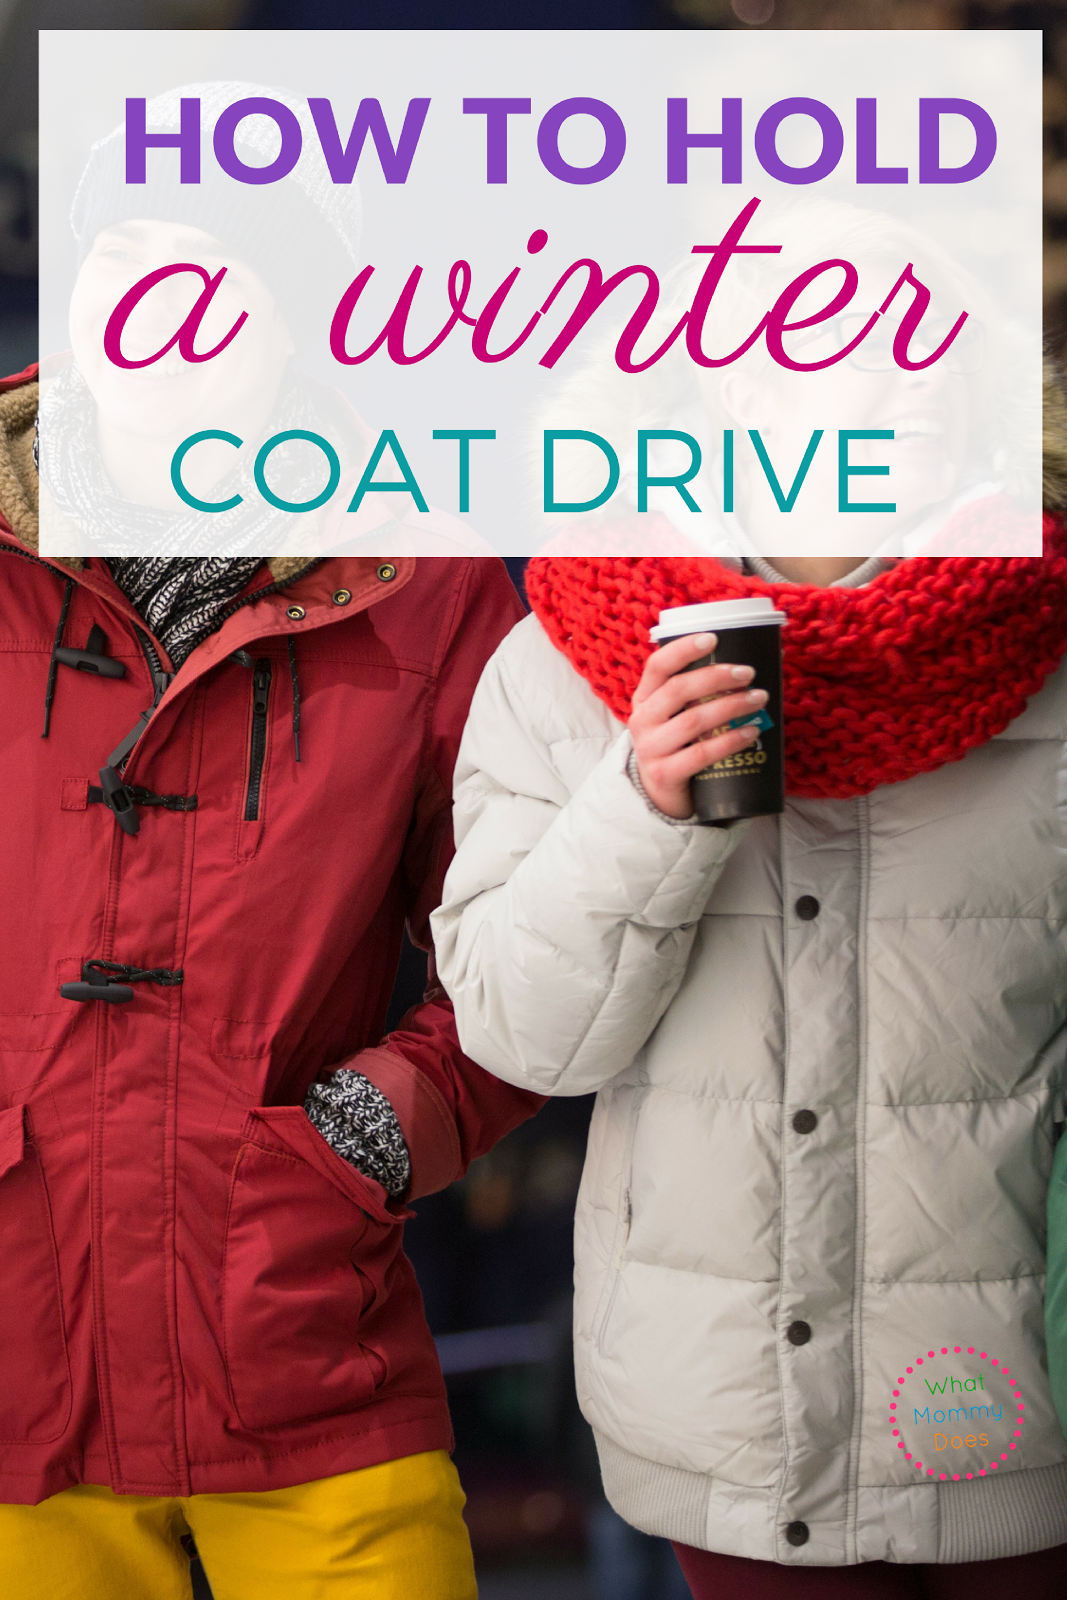 The Christmas kindness trend is lovely. Here's an idea that kids can help with….donate clothes & coats to local homeless shelters or battered women shelters. A coat drive is a tangible way to give back to others who need help & the need for a winter coat is a simple concept even little kids can understand.